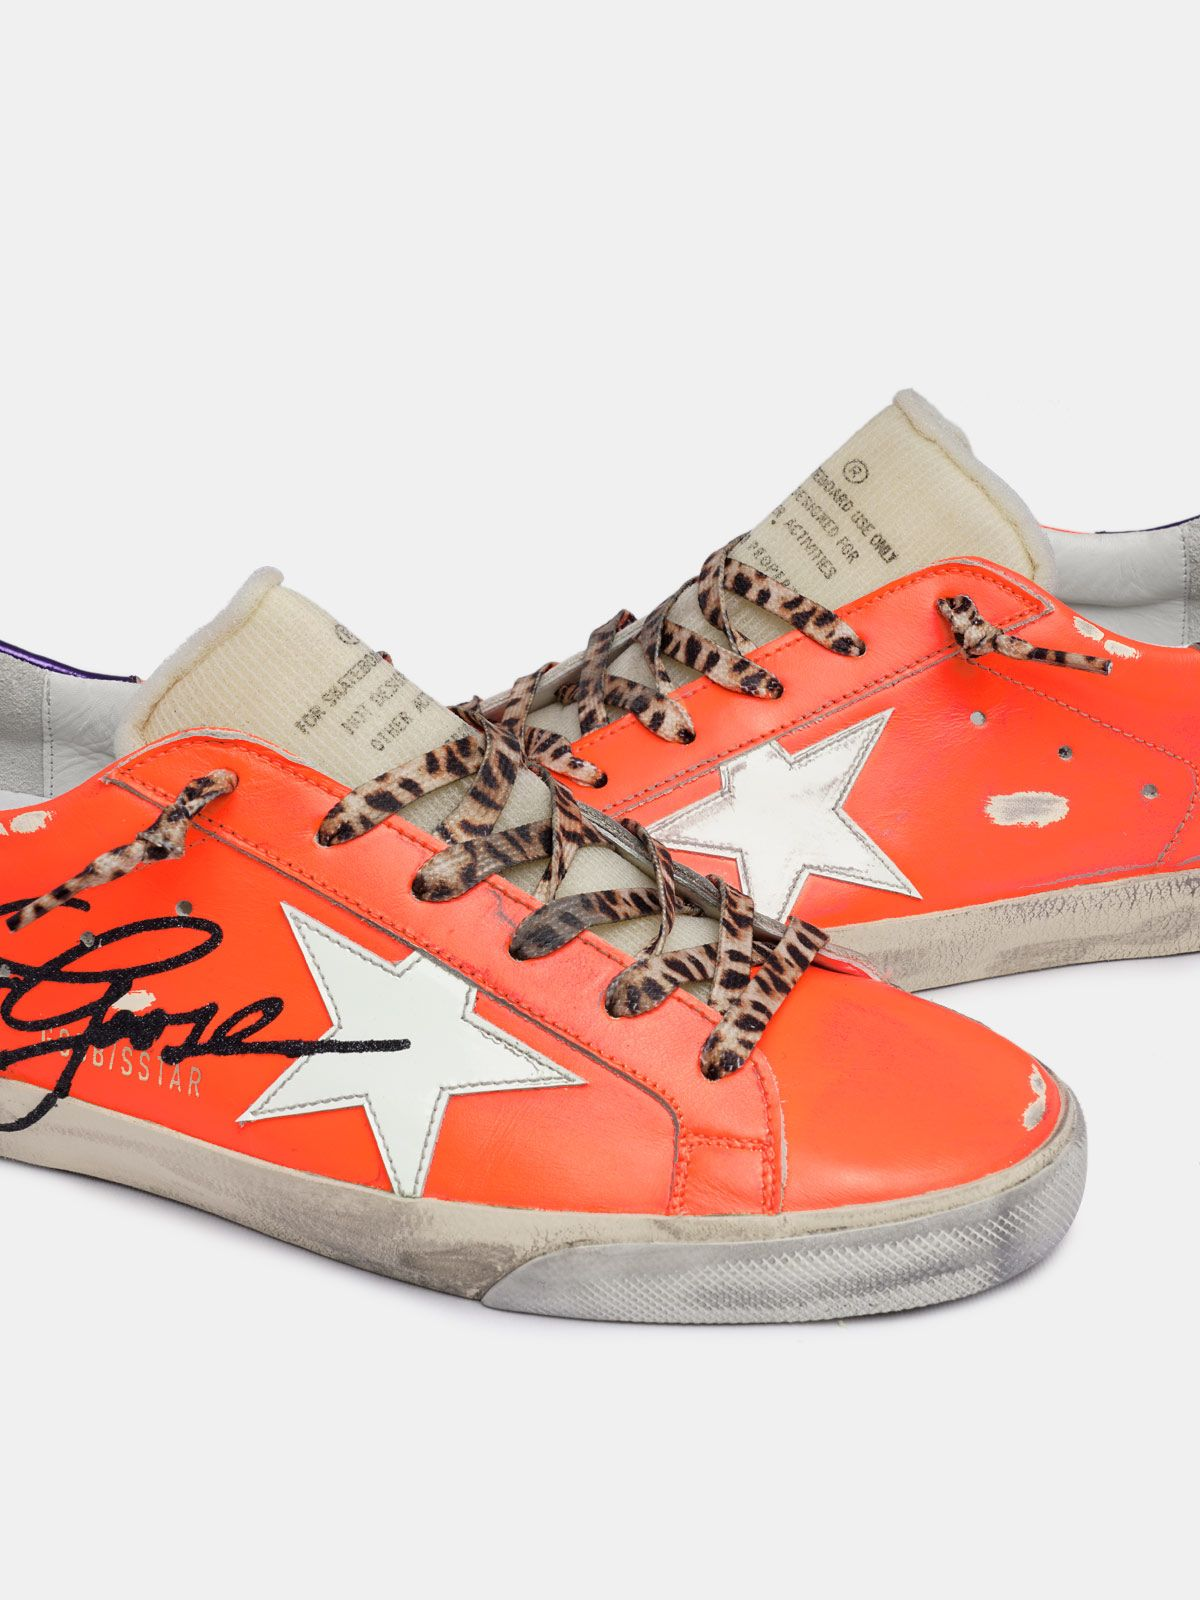 Golden Goose - Orange Super-Star sneakers with Golden Goose logo in